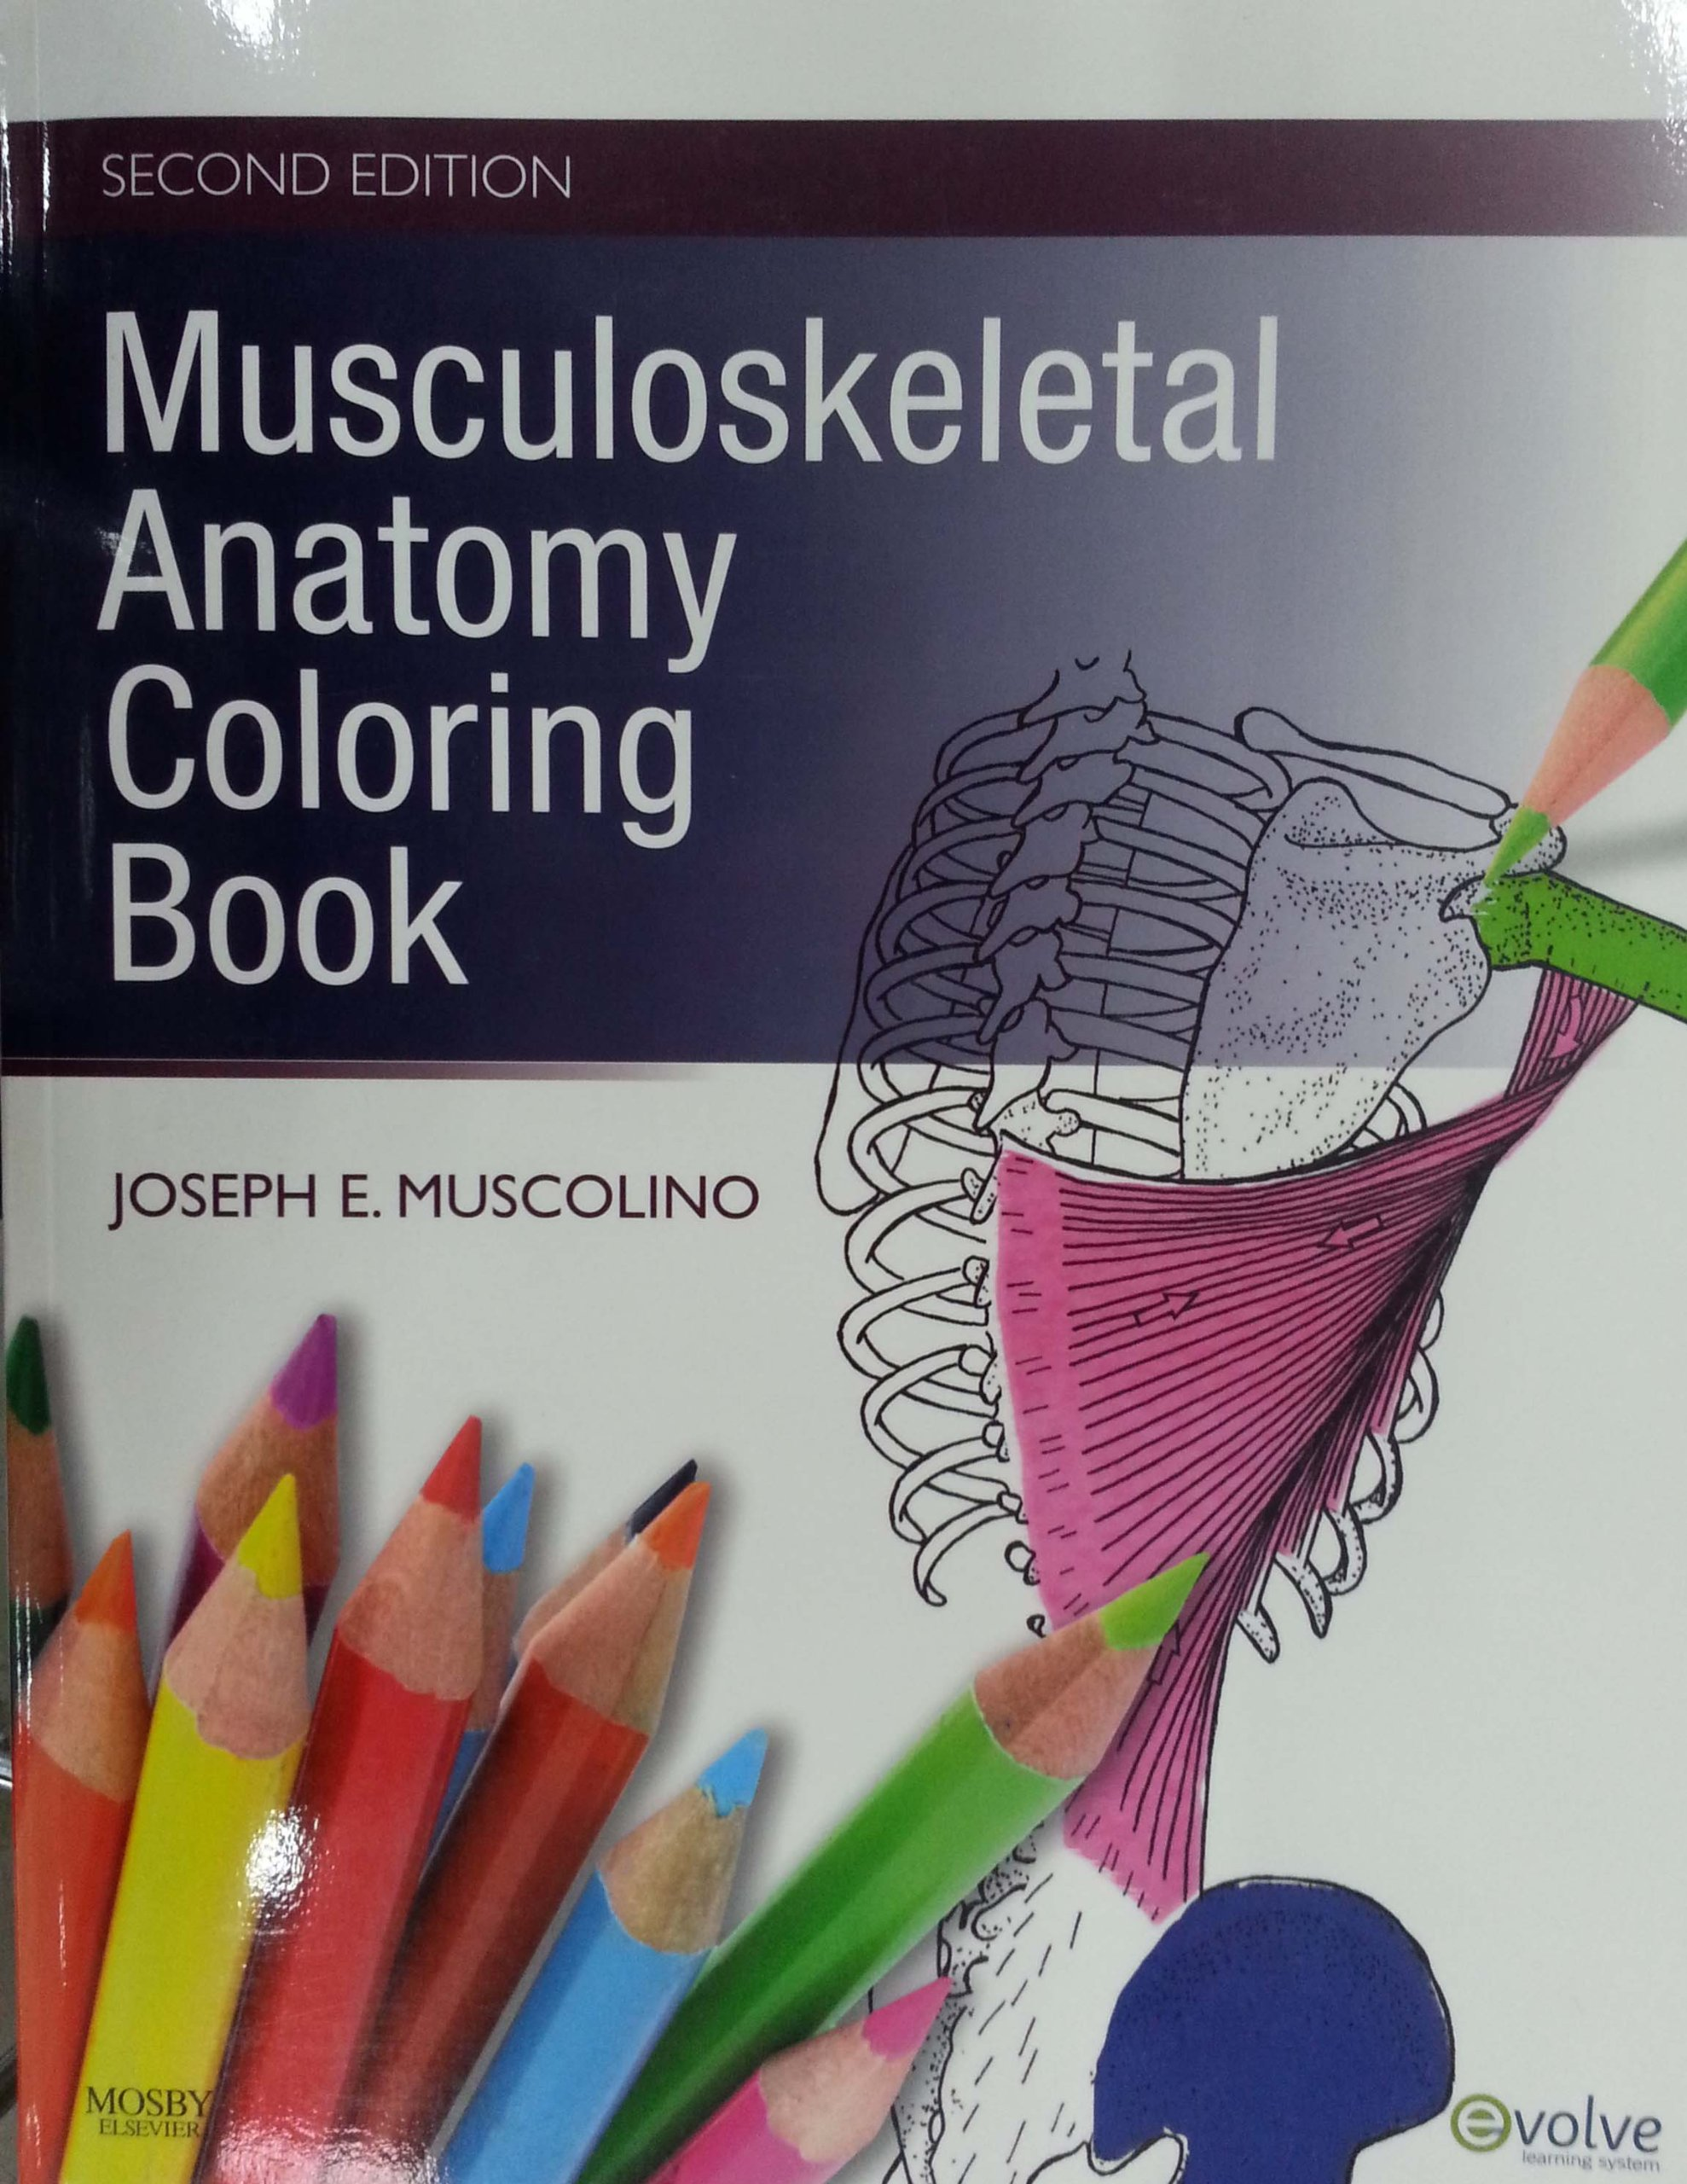 Free online anatomy coloring book - Musculoskeletal Anatomy Coloring Book Joseph E Muscolino Dc